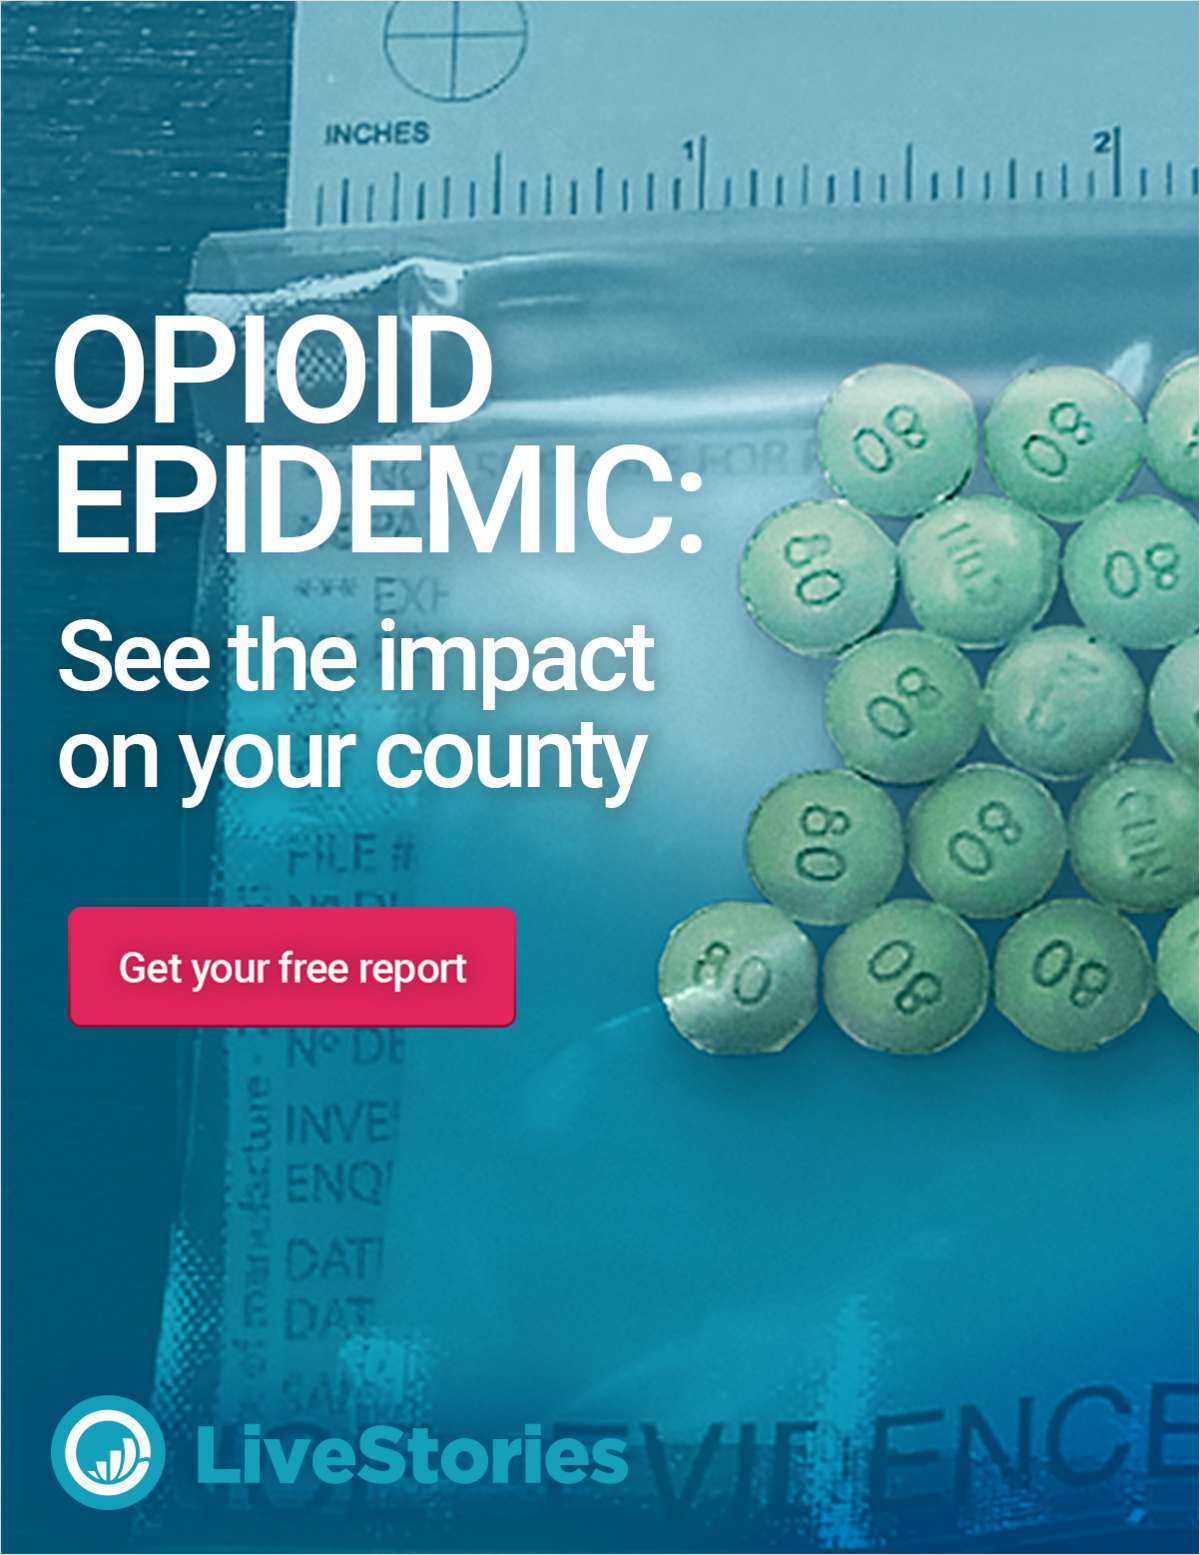 The Opioid Epidemic: See the Impact on Your County